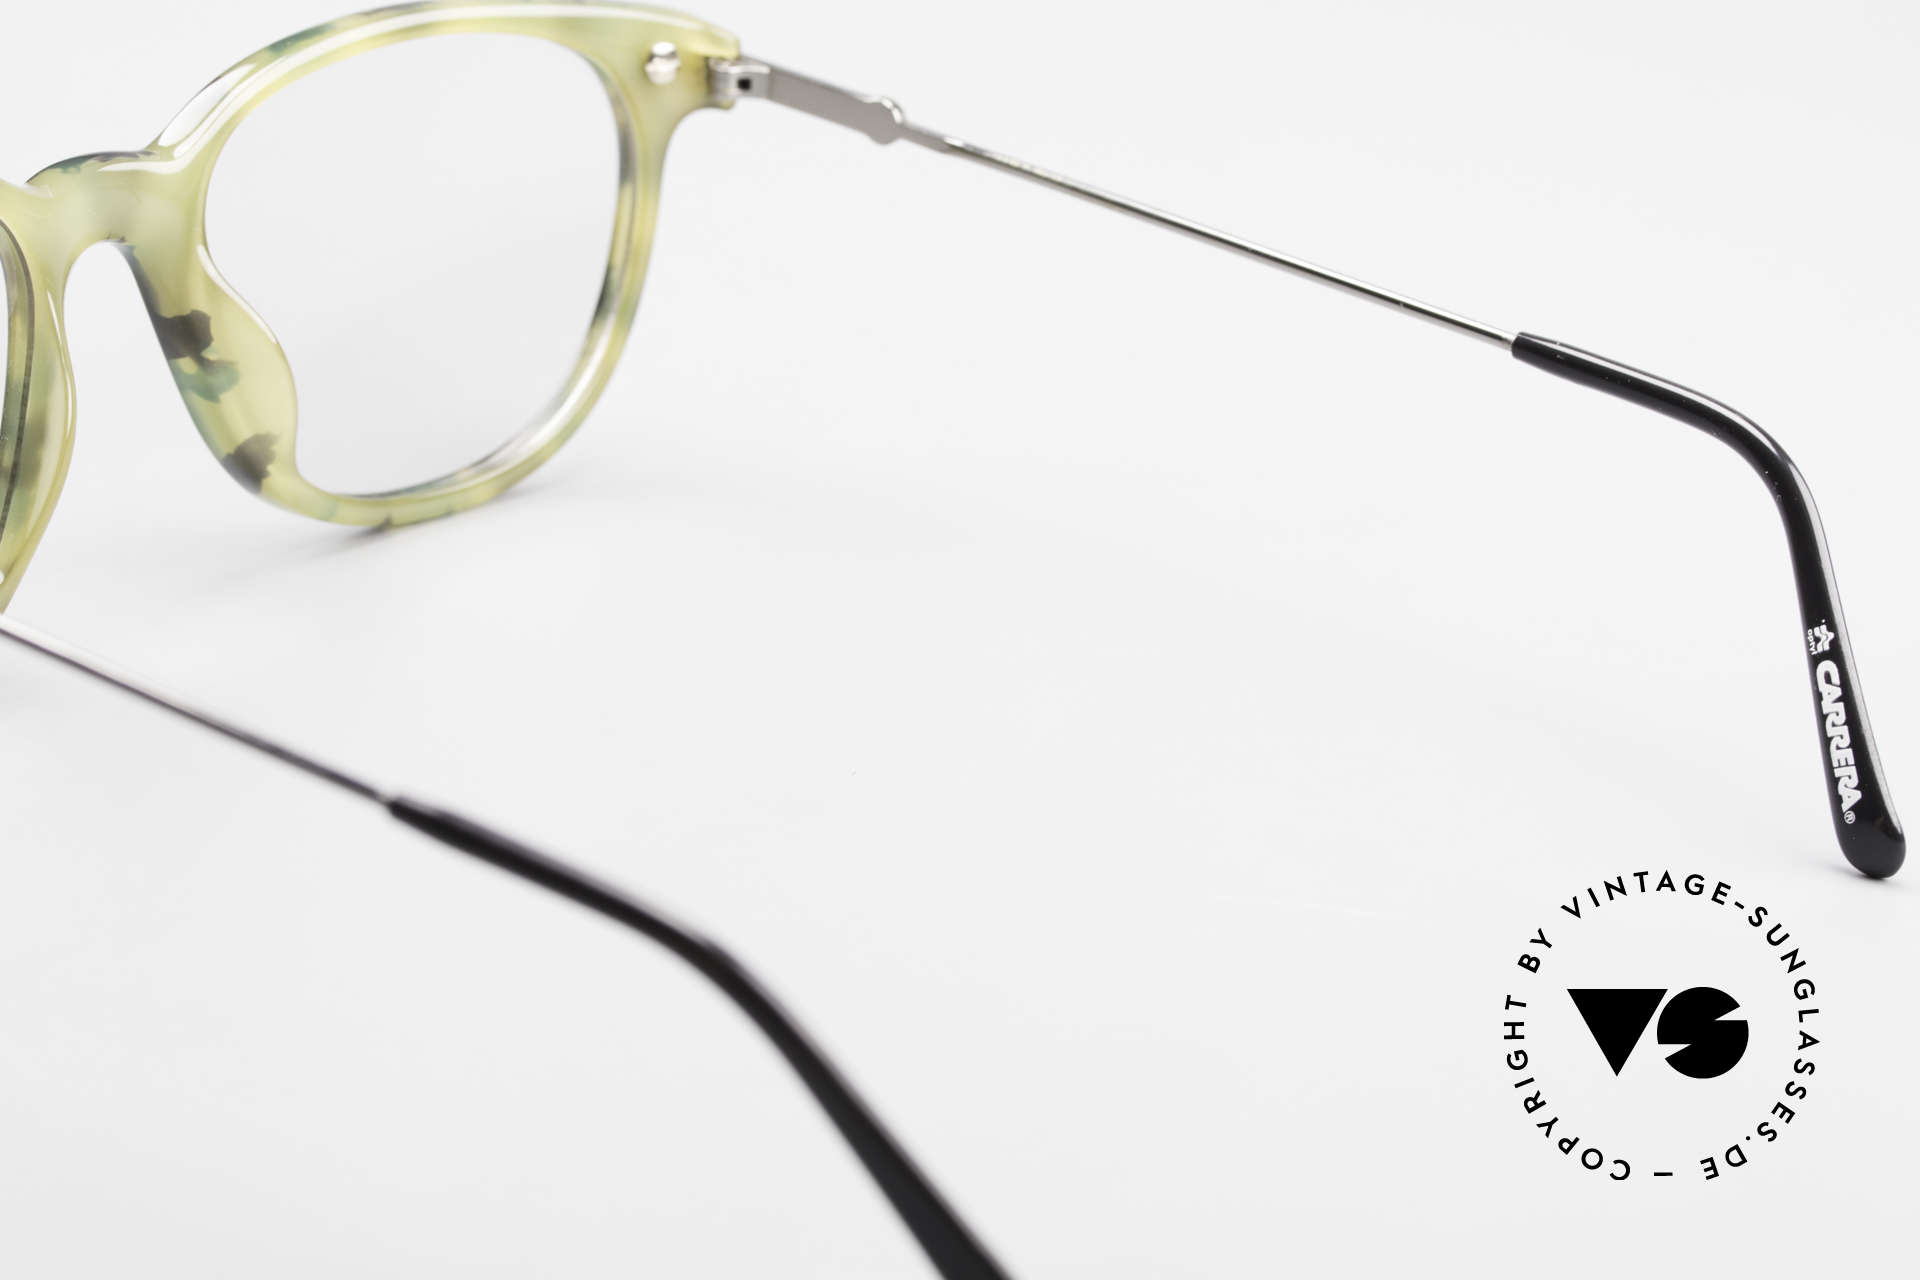 BOSS 5115 Camouflage Vintage Eyeglasses, DEMO lenses could be replaced with prescriptions, Made for Men